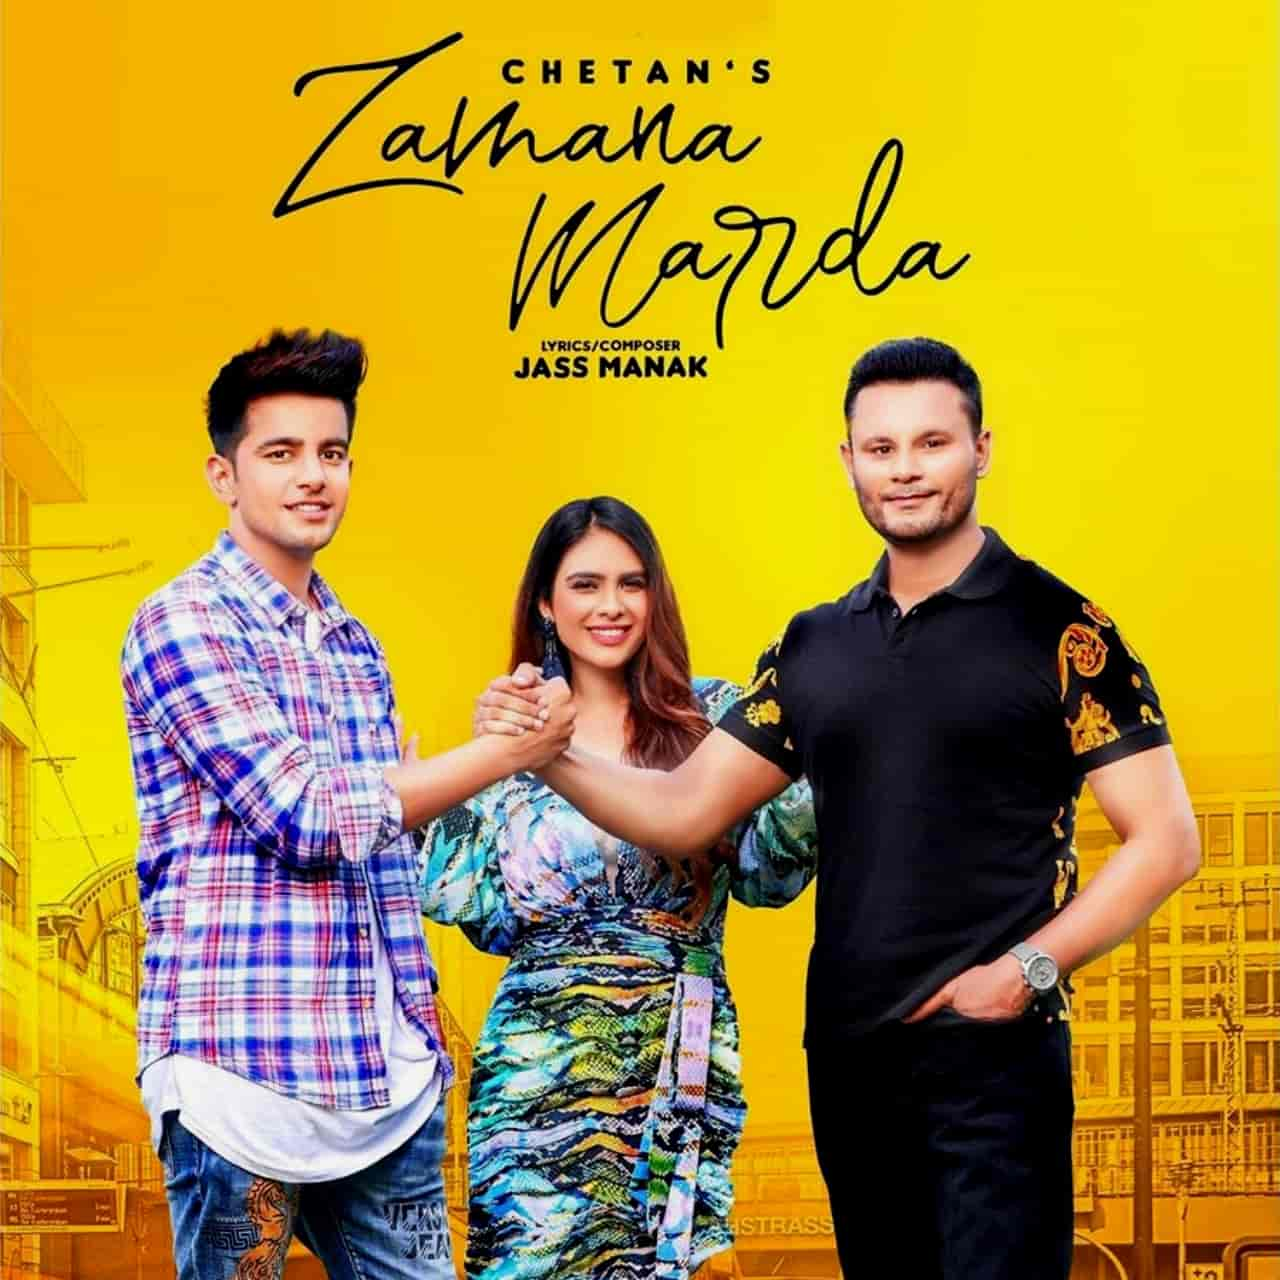 Zamana Marda Punjabi Song Image By Chetan And Jass Manak